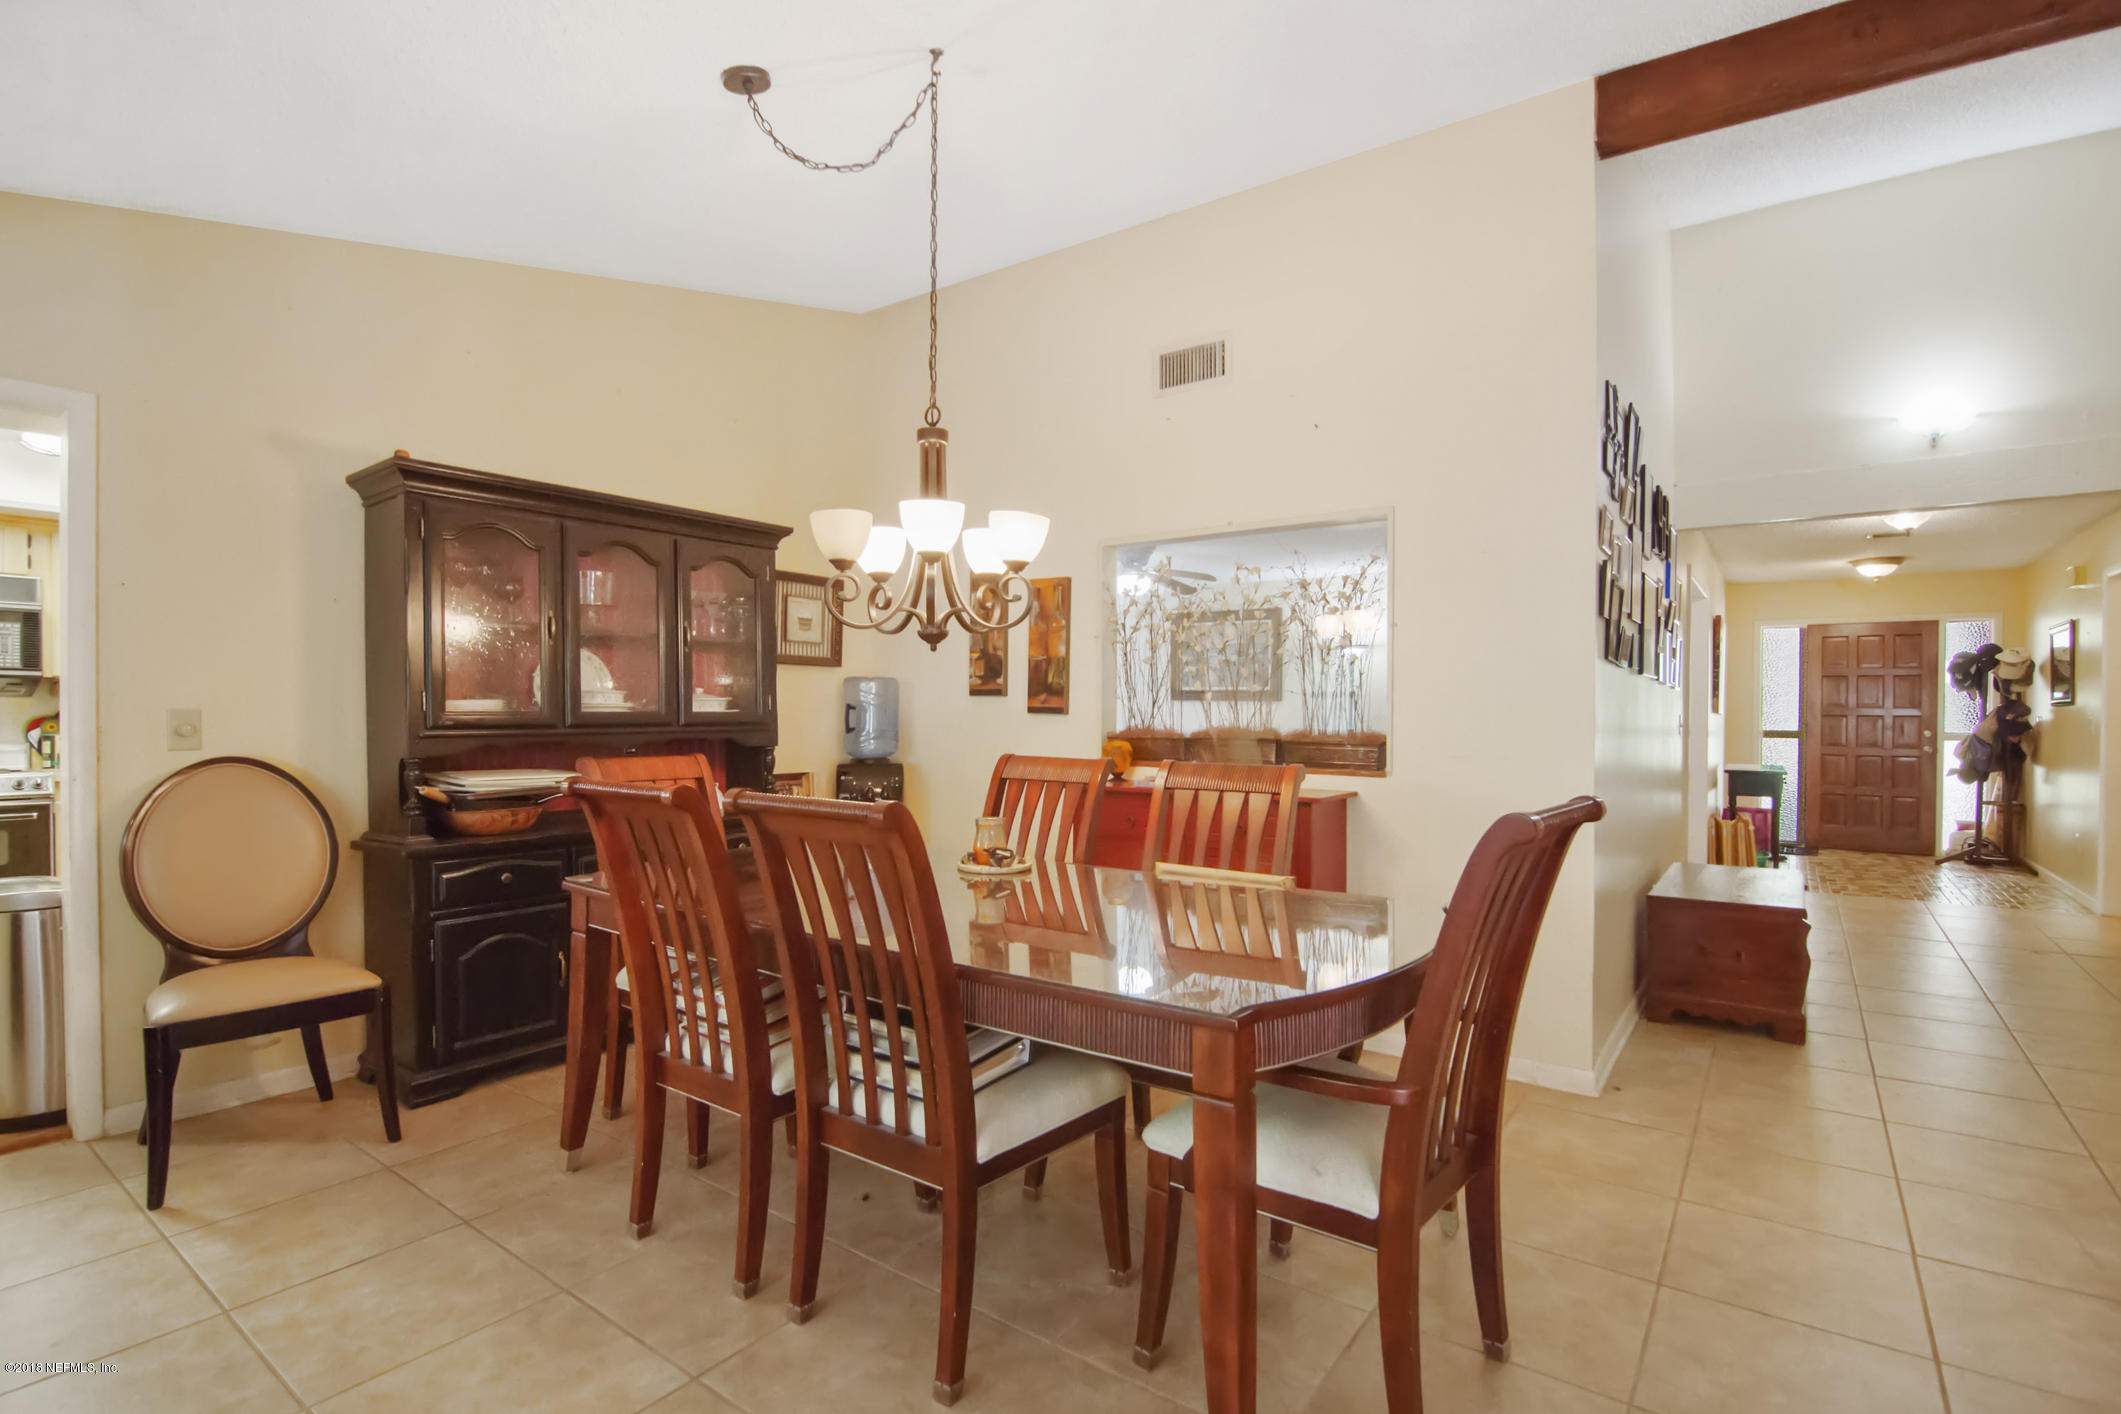 3470 RED CLOUD, ST AUGUSTINE, FLORIDA 32086, 3 Bedrooms Bedrooms, ,2 BathroomsBathrooms,Residential - single family,For sale,RED CLOUD,942859